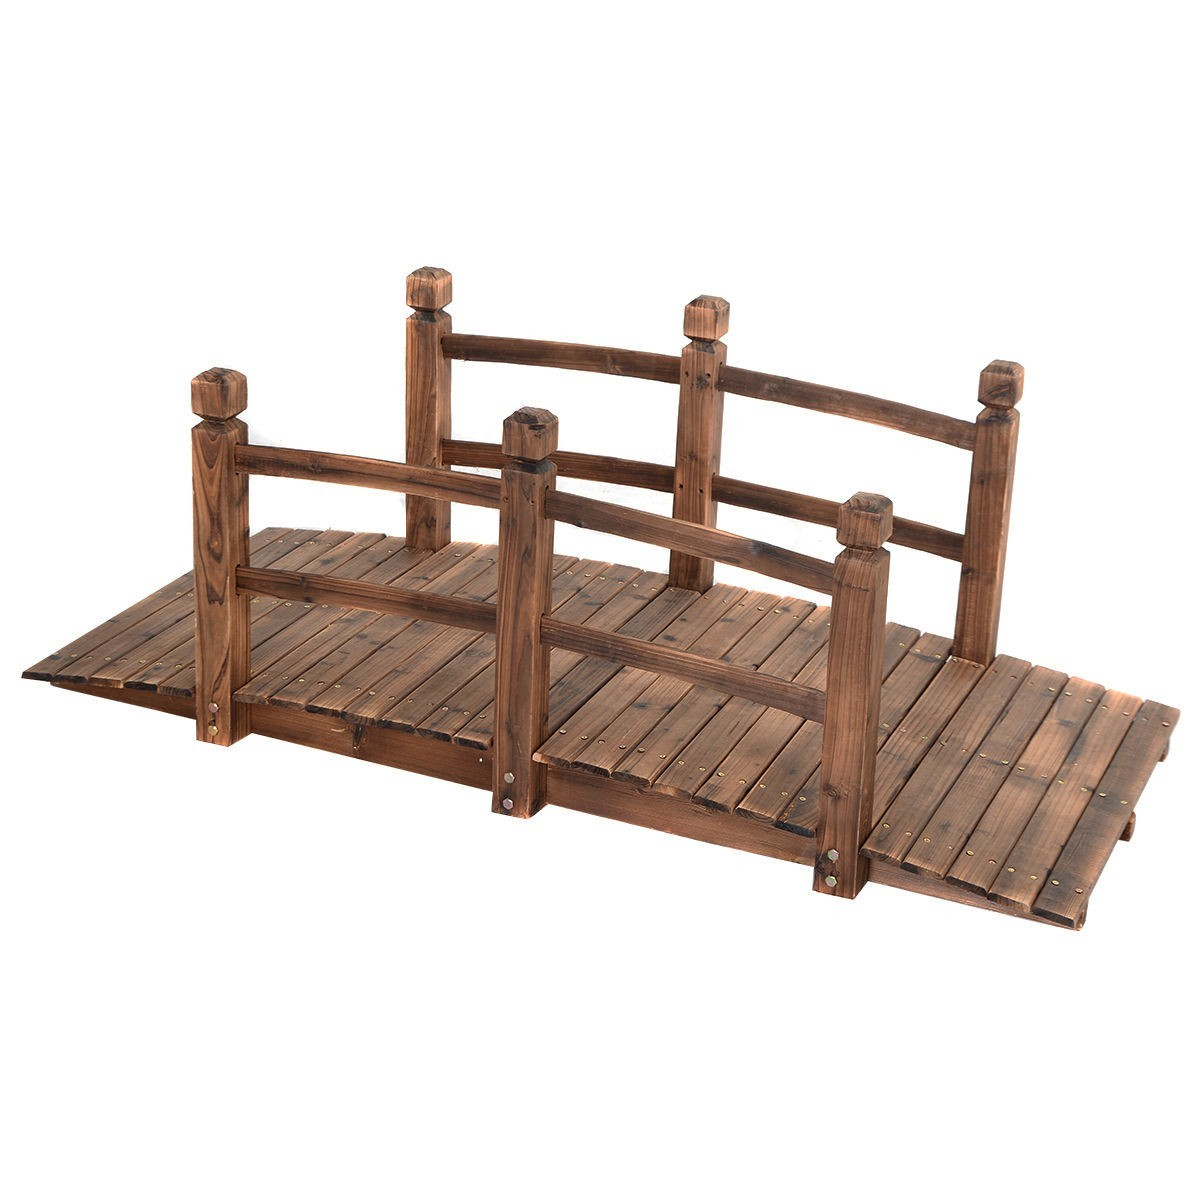 5' Wooden Bridge Stained Finish Decorative Solid Wood Garden Pond Arch Walkway